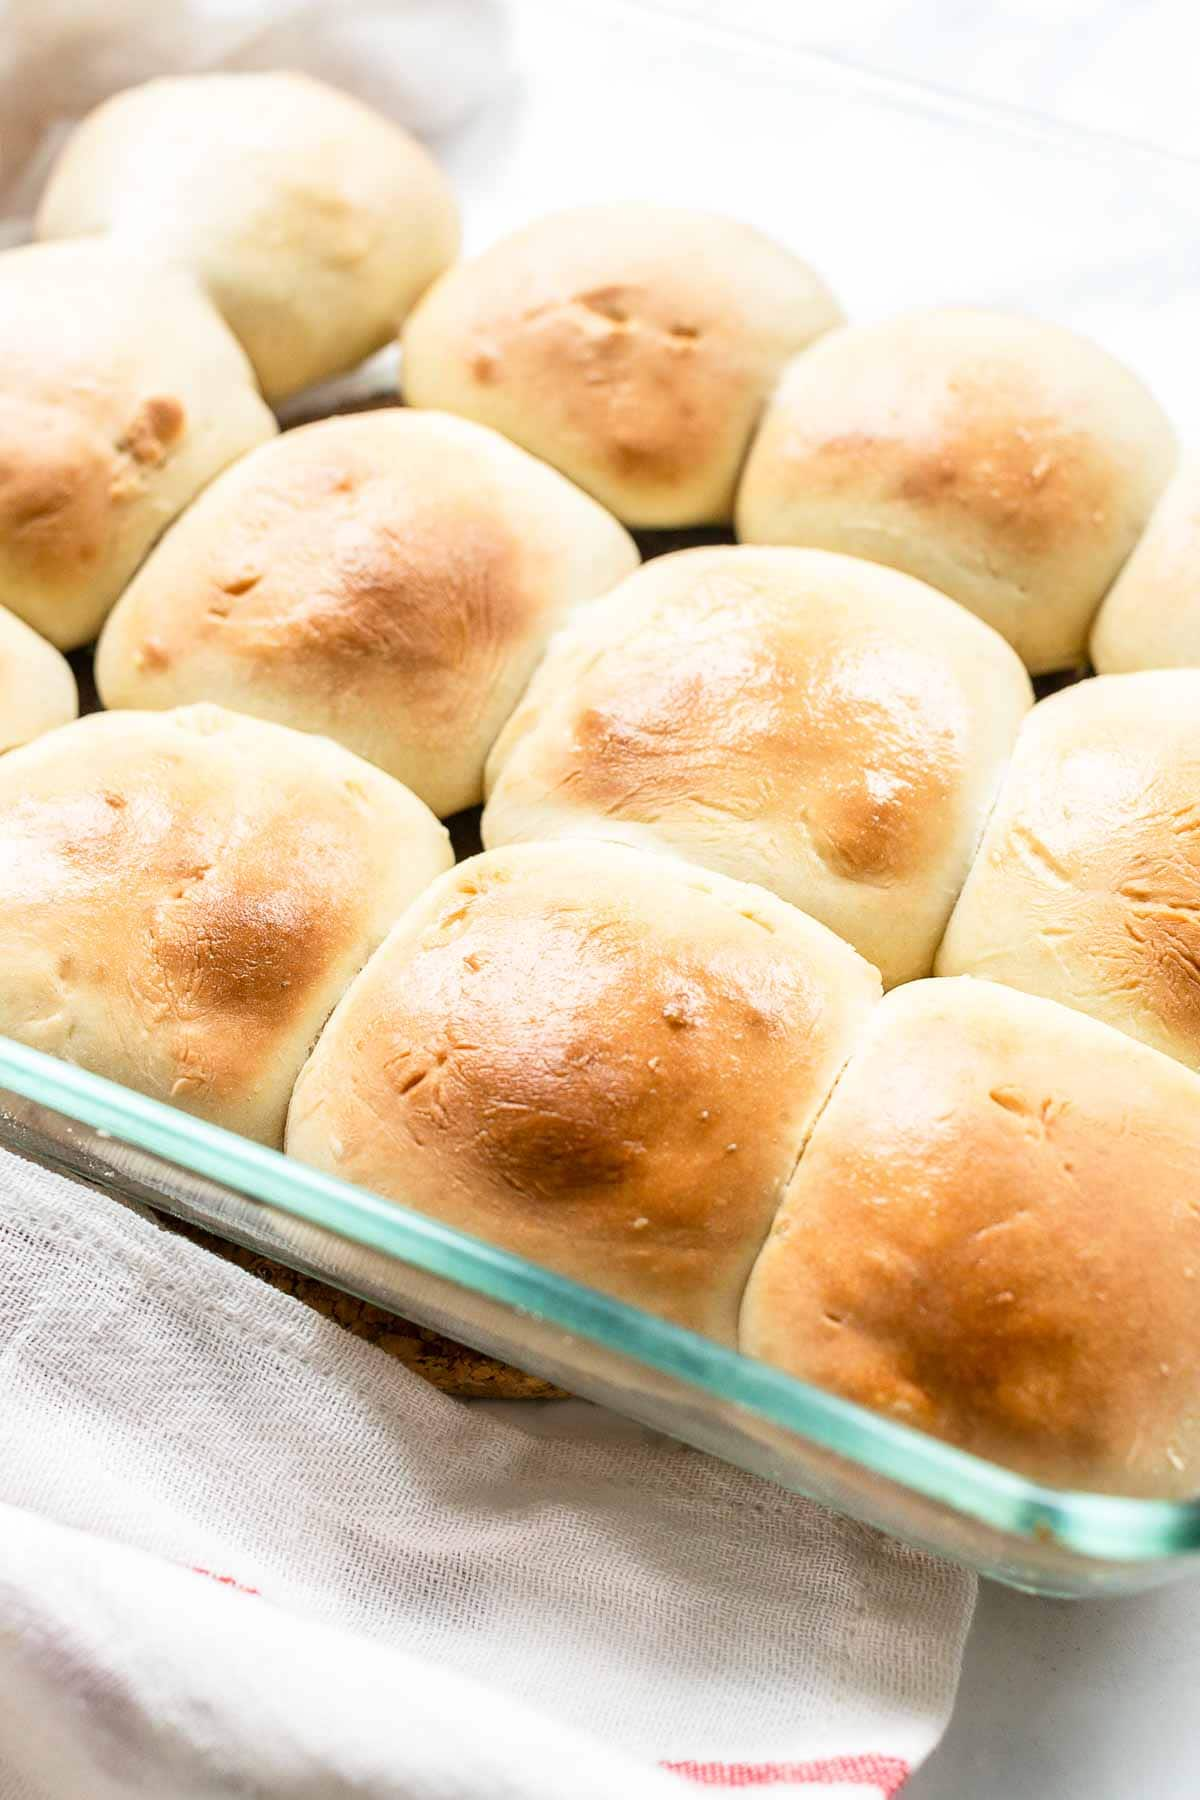 Make homemade fluffy dinner rolls. These are great as a side dish but also lovely with sliders or as mini hamburger buns. Visit fastfoodbistro.com for the full recipe #fastfoodbistro #dinnerrolls #fluffydinnerrolls #breadrolls #softbread #buns